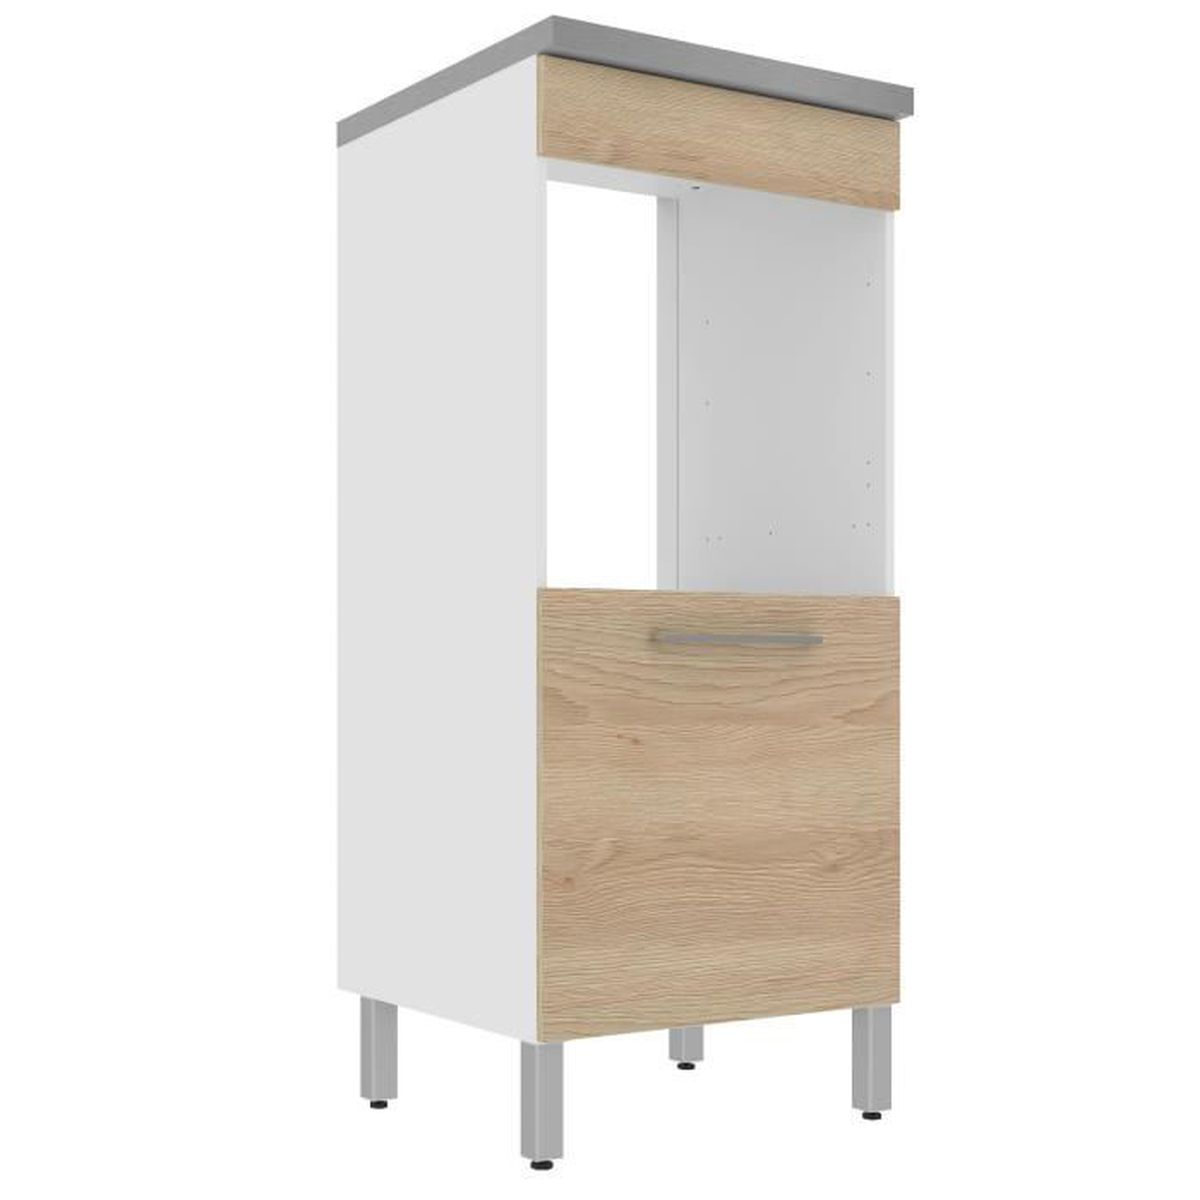 elia meuble de cuisine armoire pour four coloris ch ne 60cm naturel achat vente elements. Black Bedroom Furniture Sets. Home Design Ideas